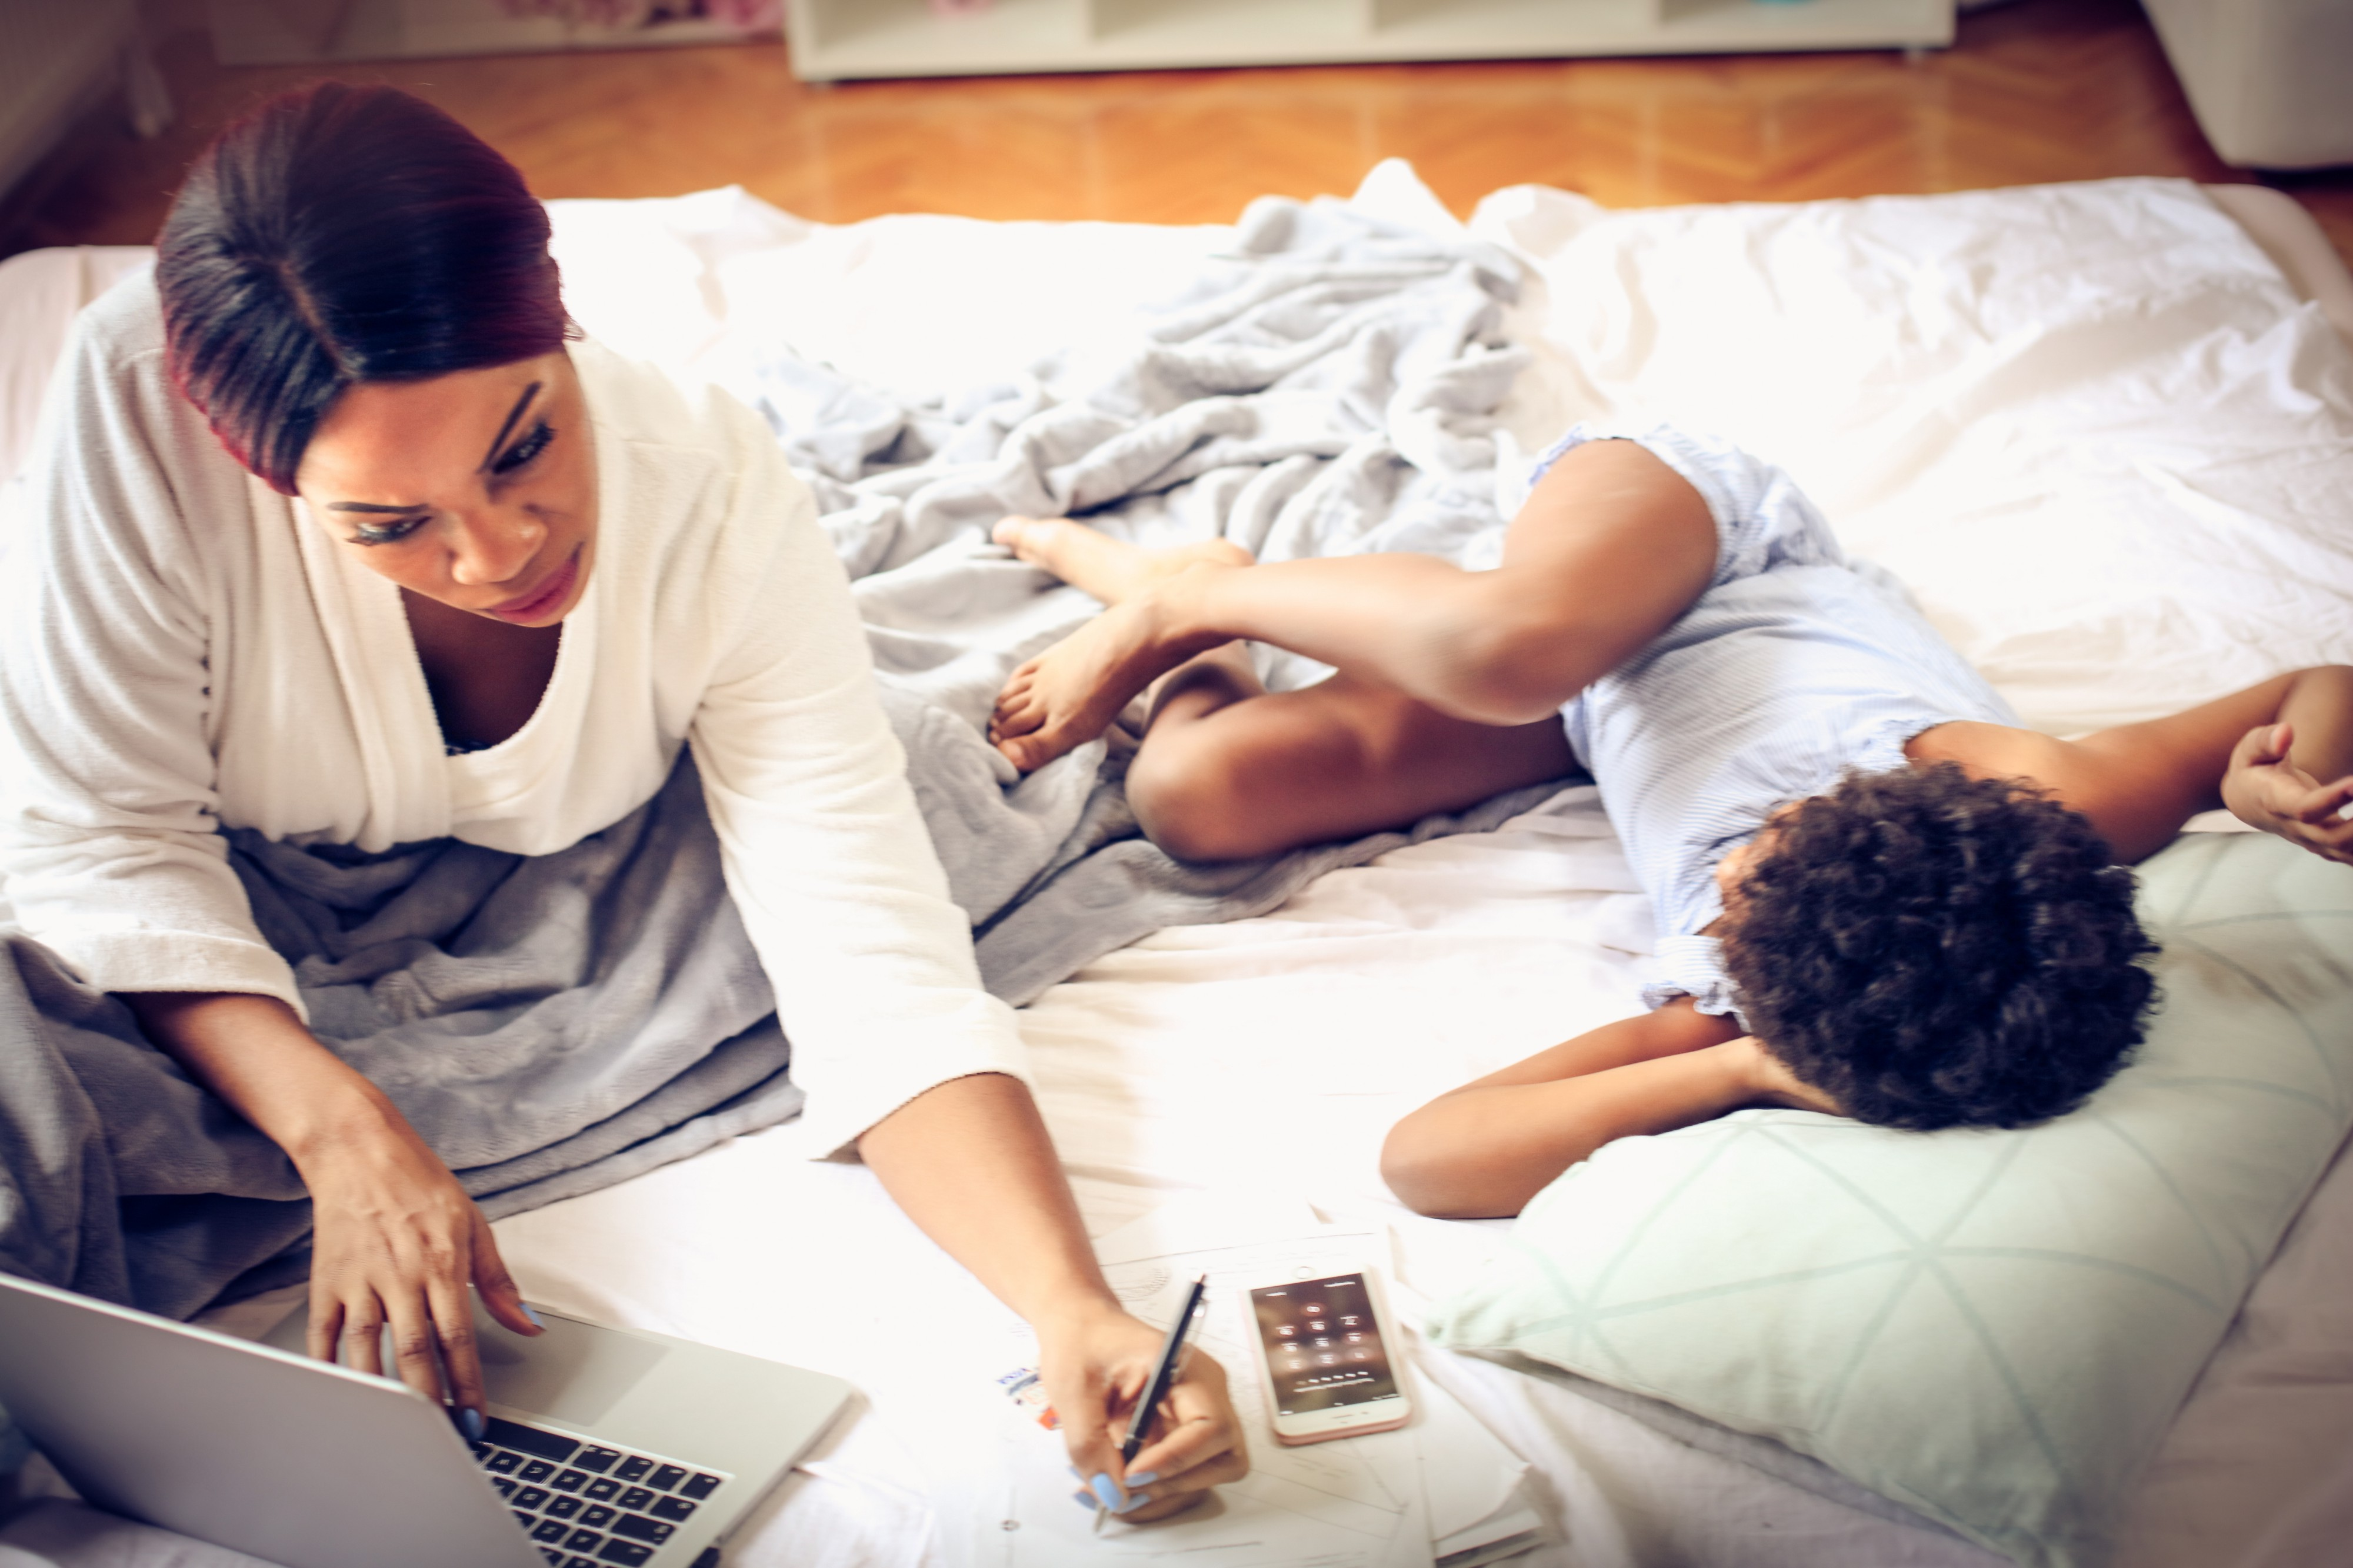 A woman looks at her laptop, working on her bed with her young daughter beside her.